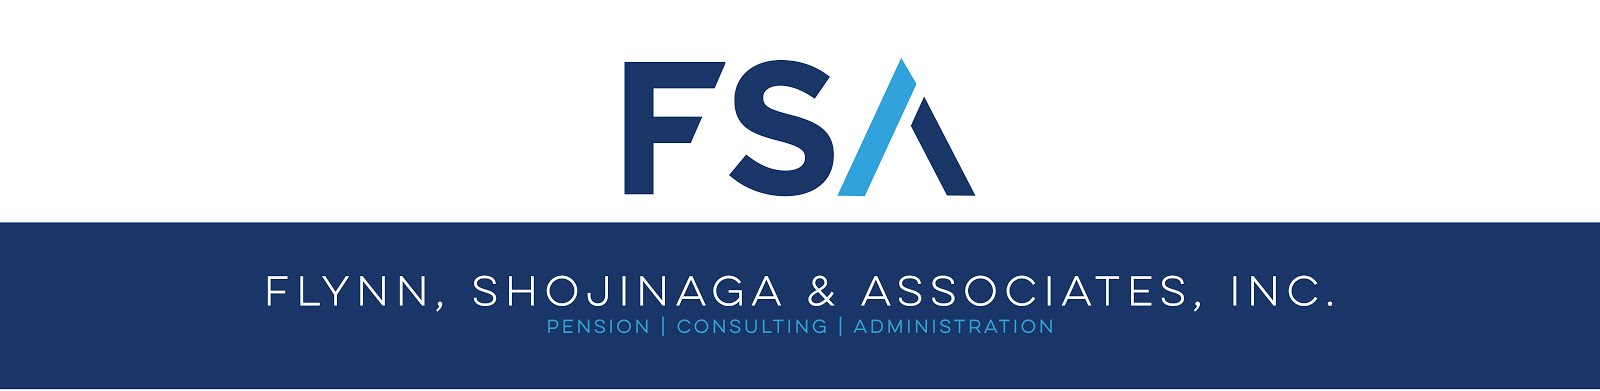 Flynn, Shojinaga & Associates, Inc.